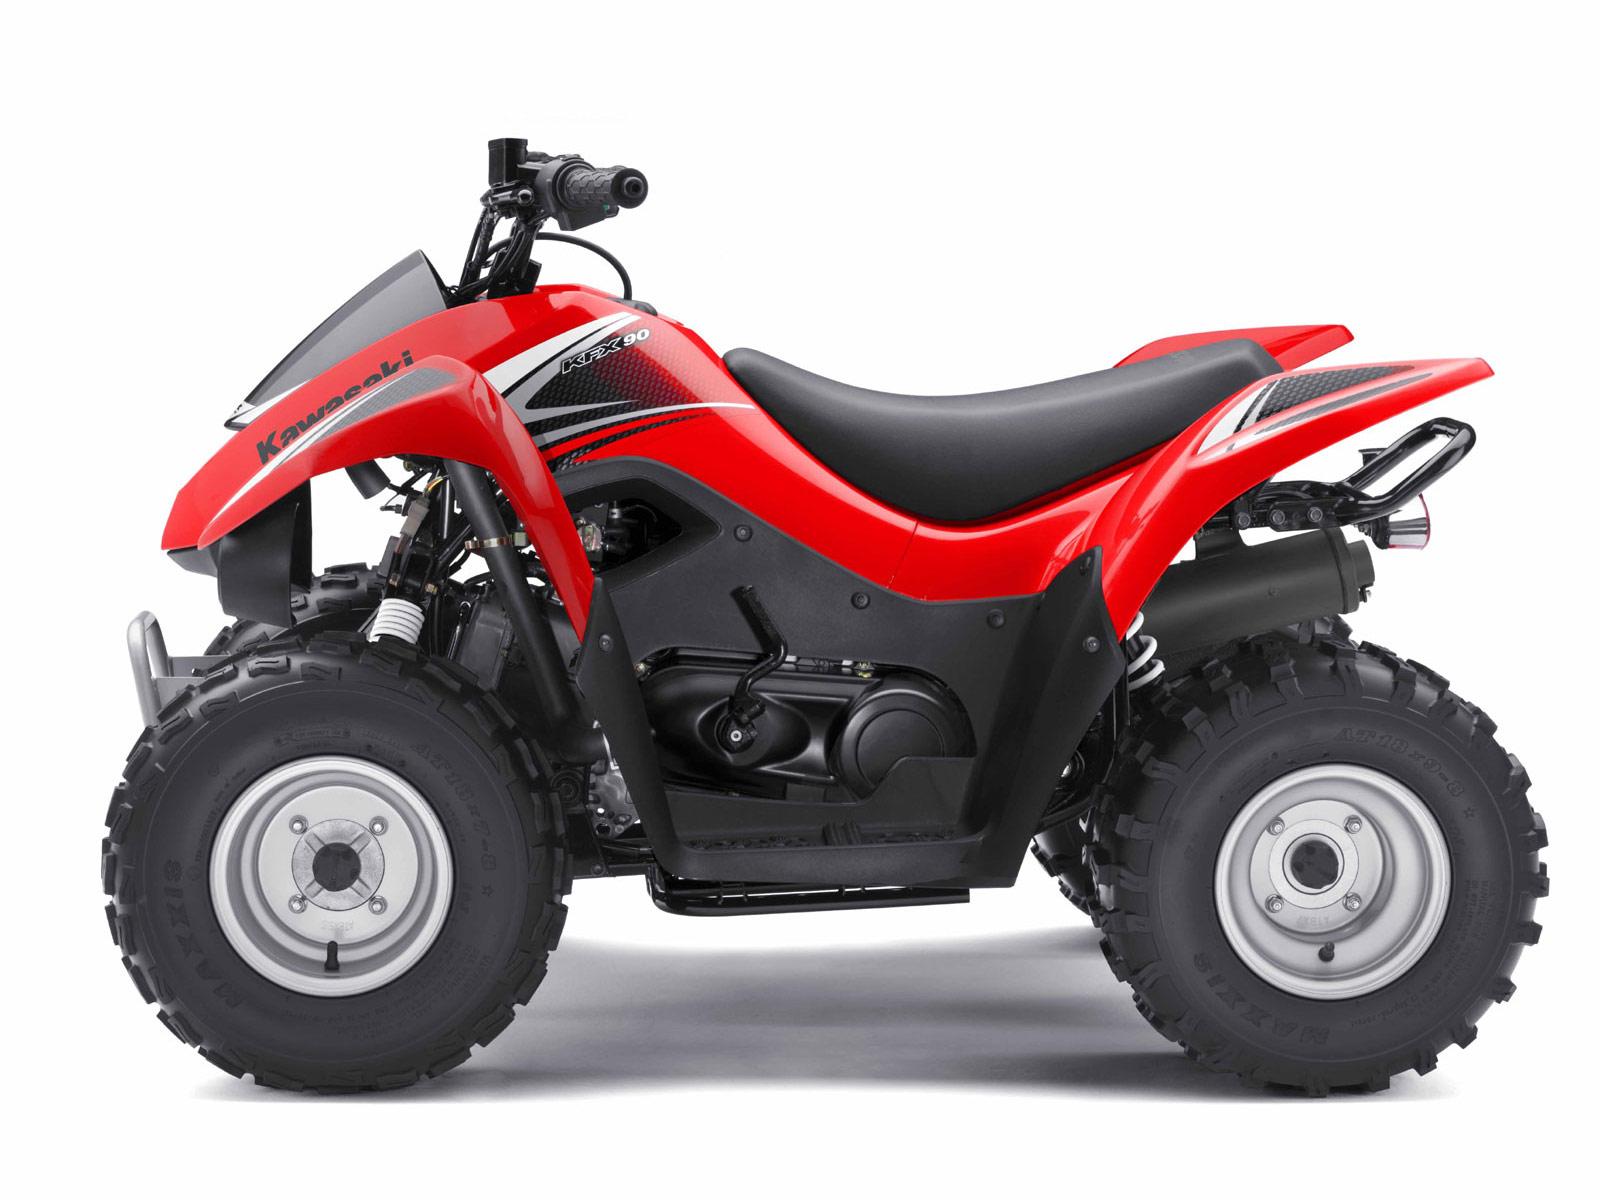 hight resolution of wiring diagram for yamaha raptor wiring diagram for yamaha grizzly elsavadorla 1989 mastercraft wiring diagram 2007 yamaha waverunner wiring diagram